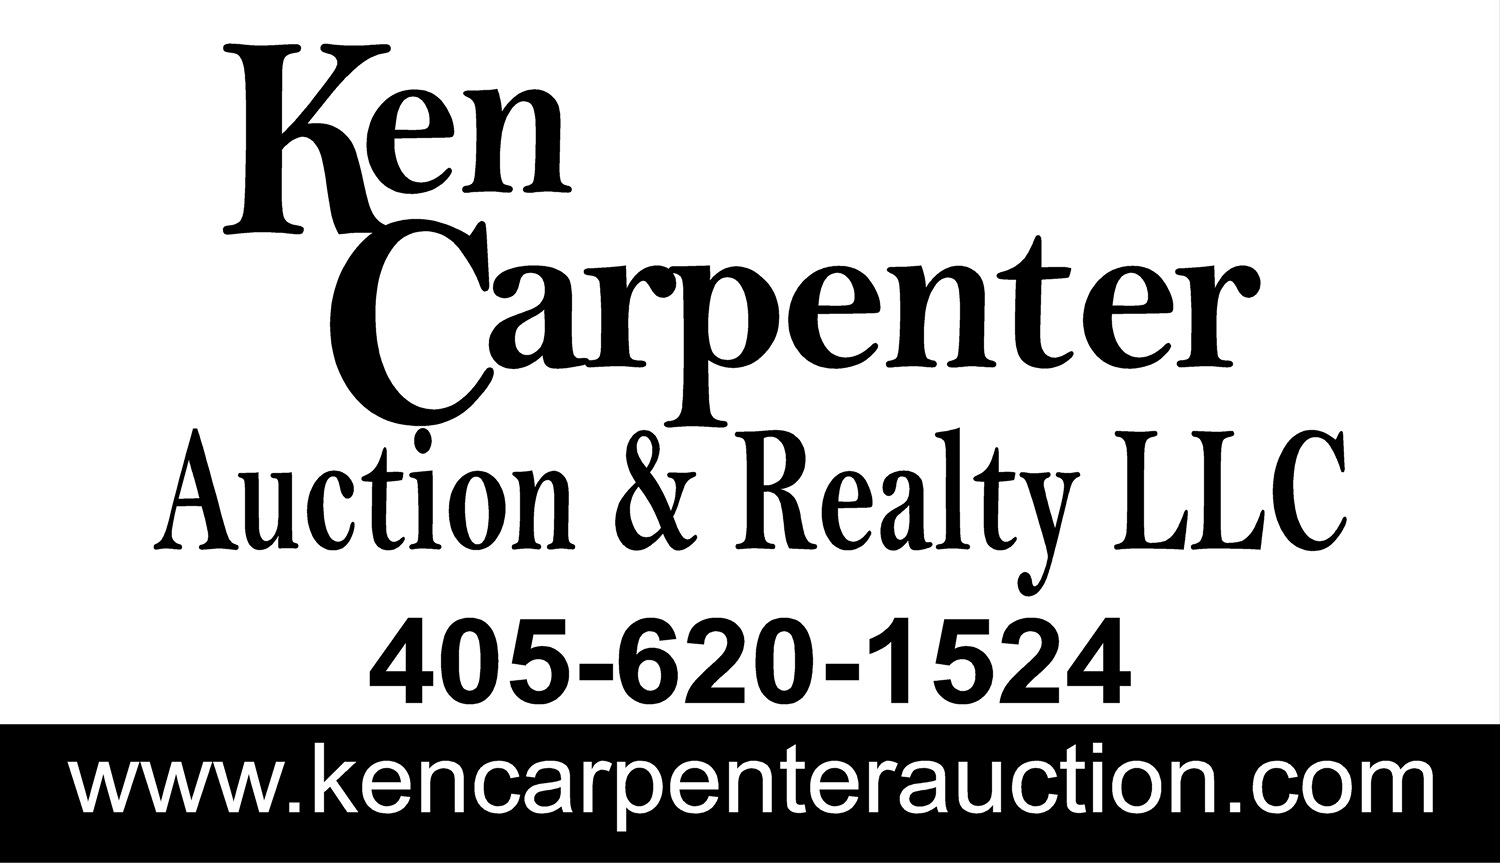 Ken Carpenter Auctions